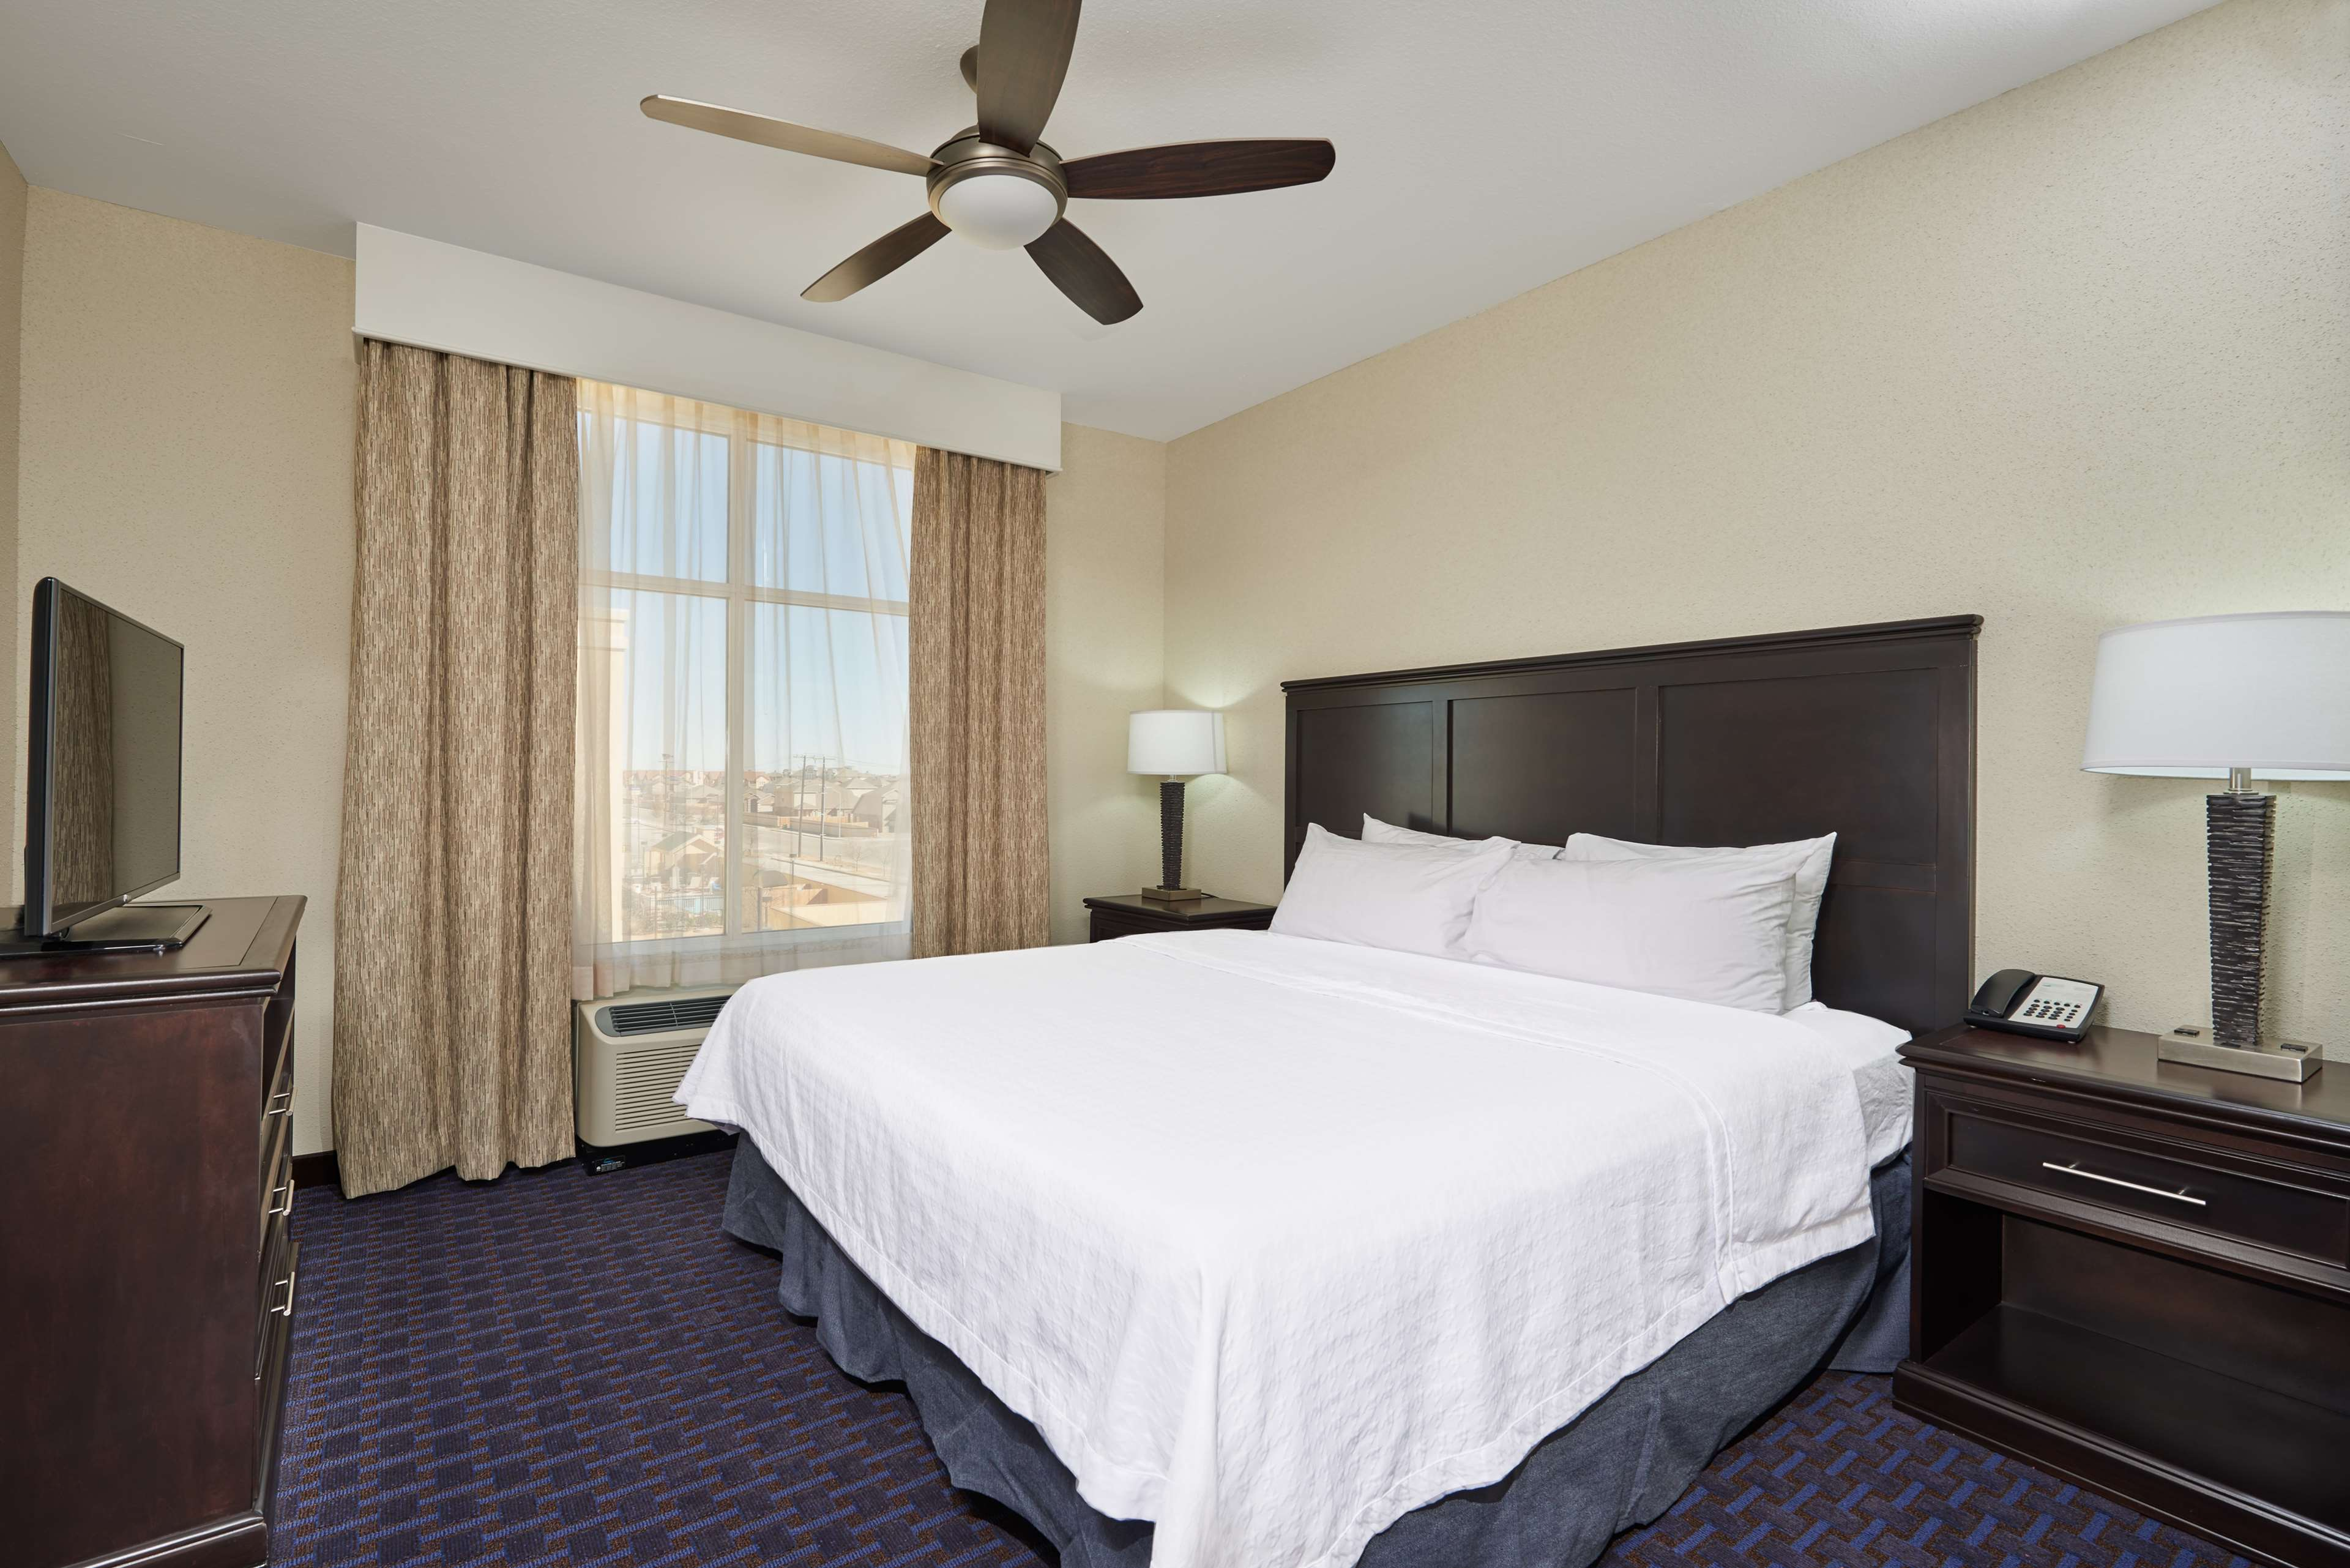 Homewood Suites by Hilton Odessa image 8